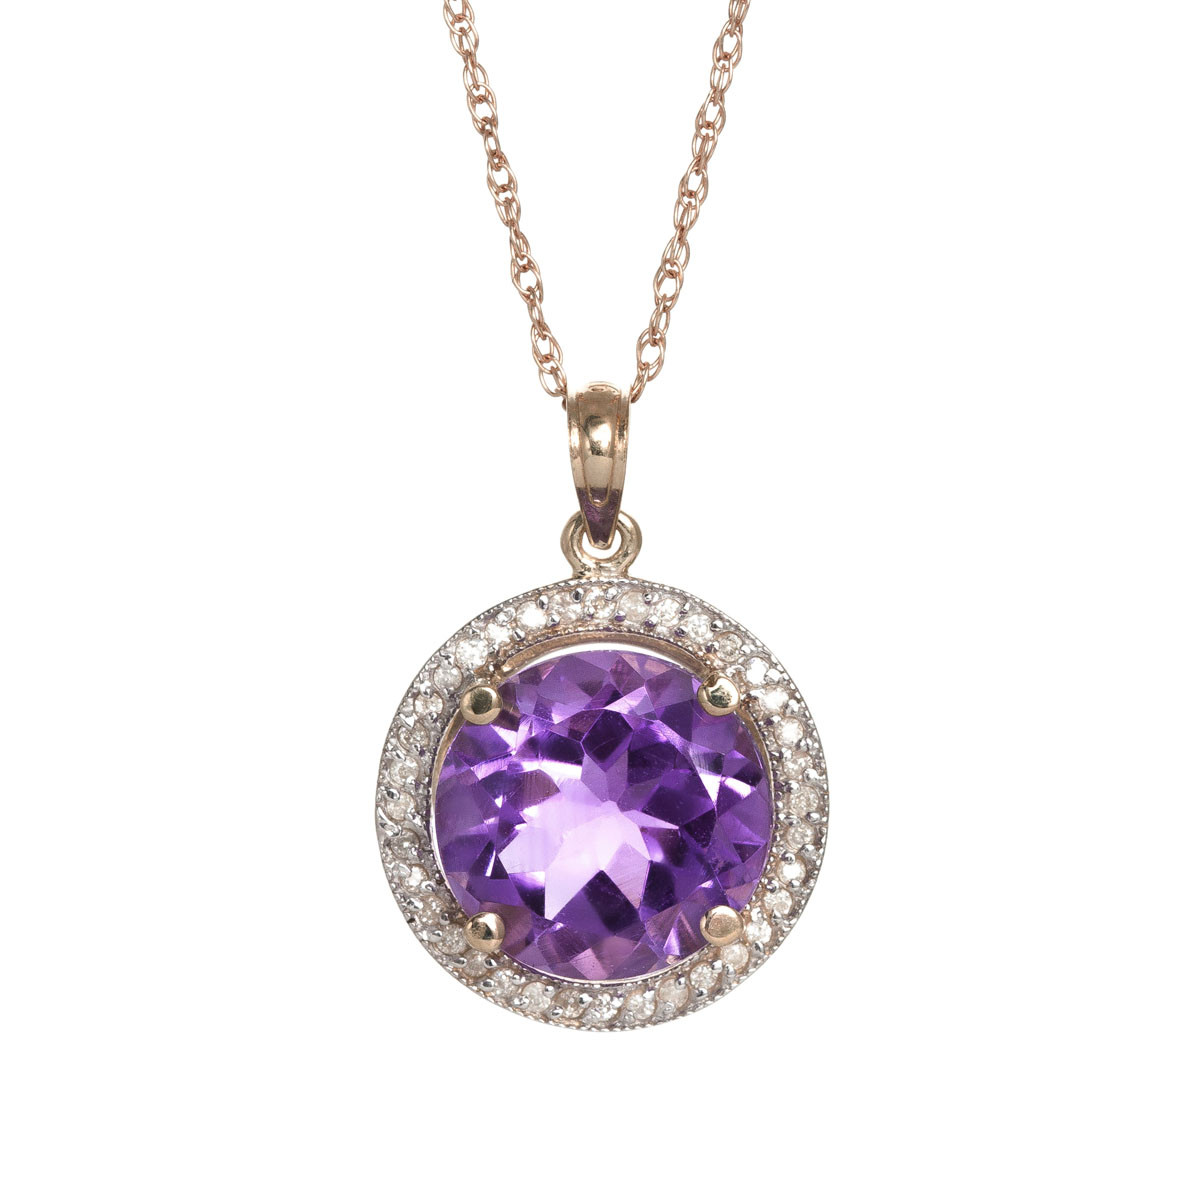 Amethyst Halo Pendant Necklace 6.2 ctw in 9ct Rose Gold